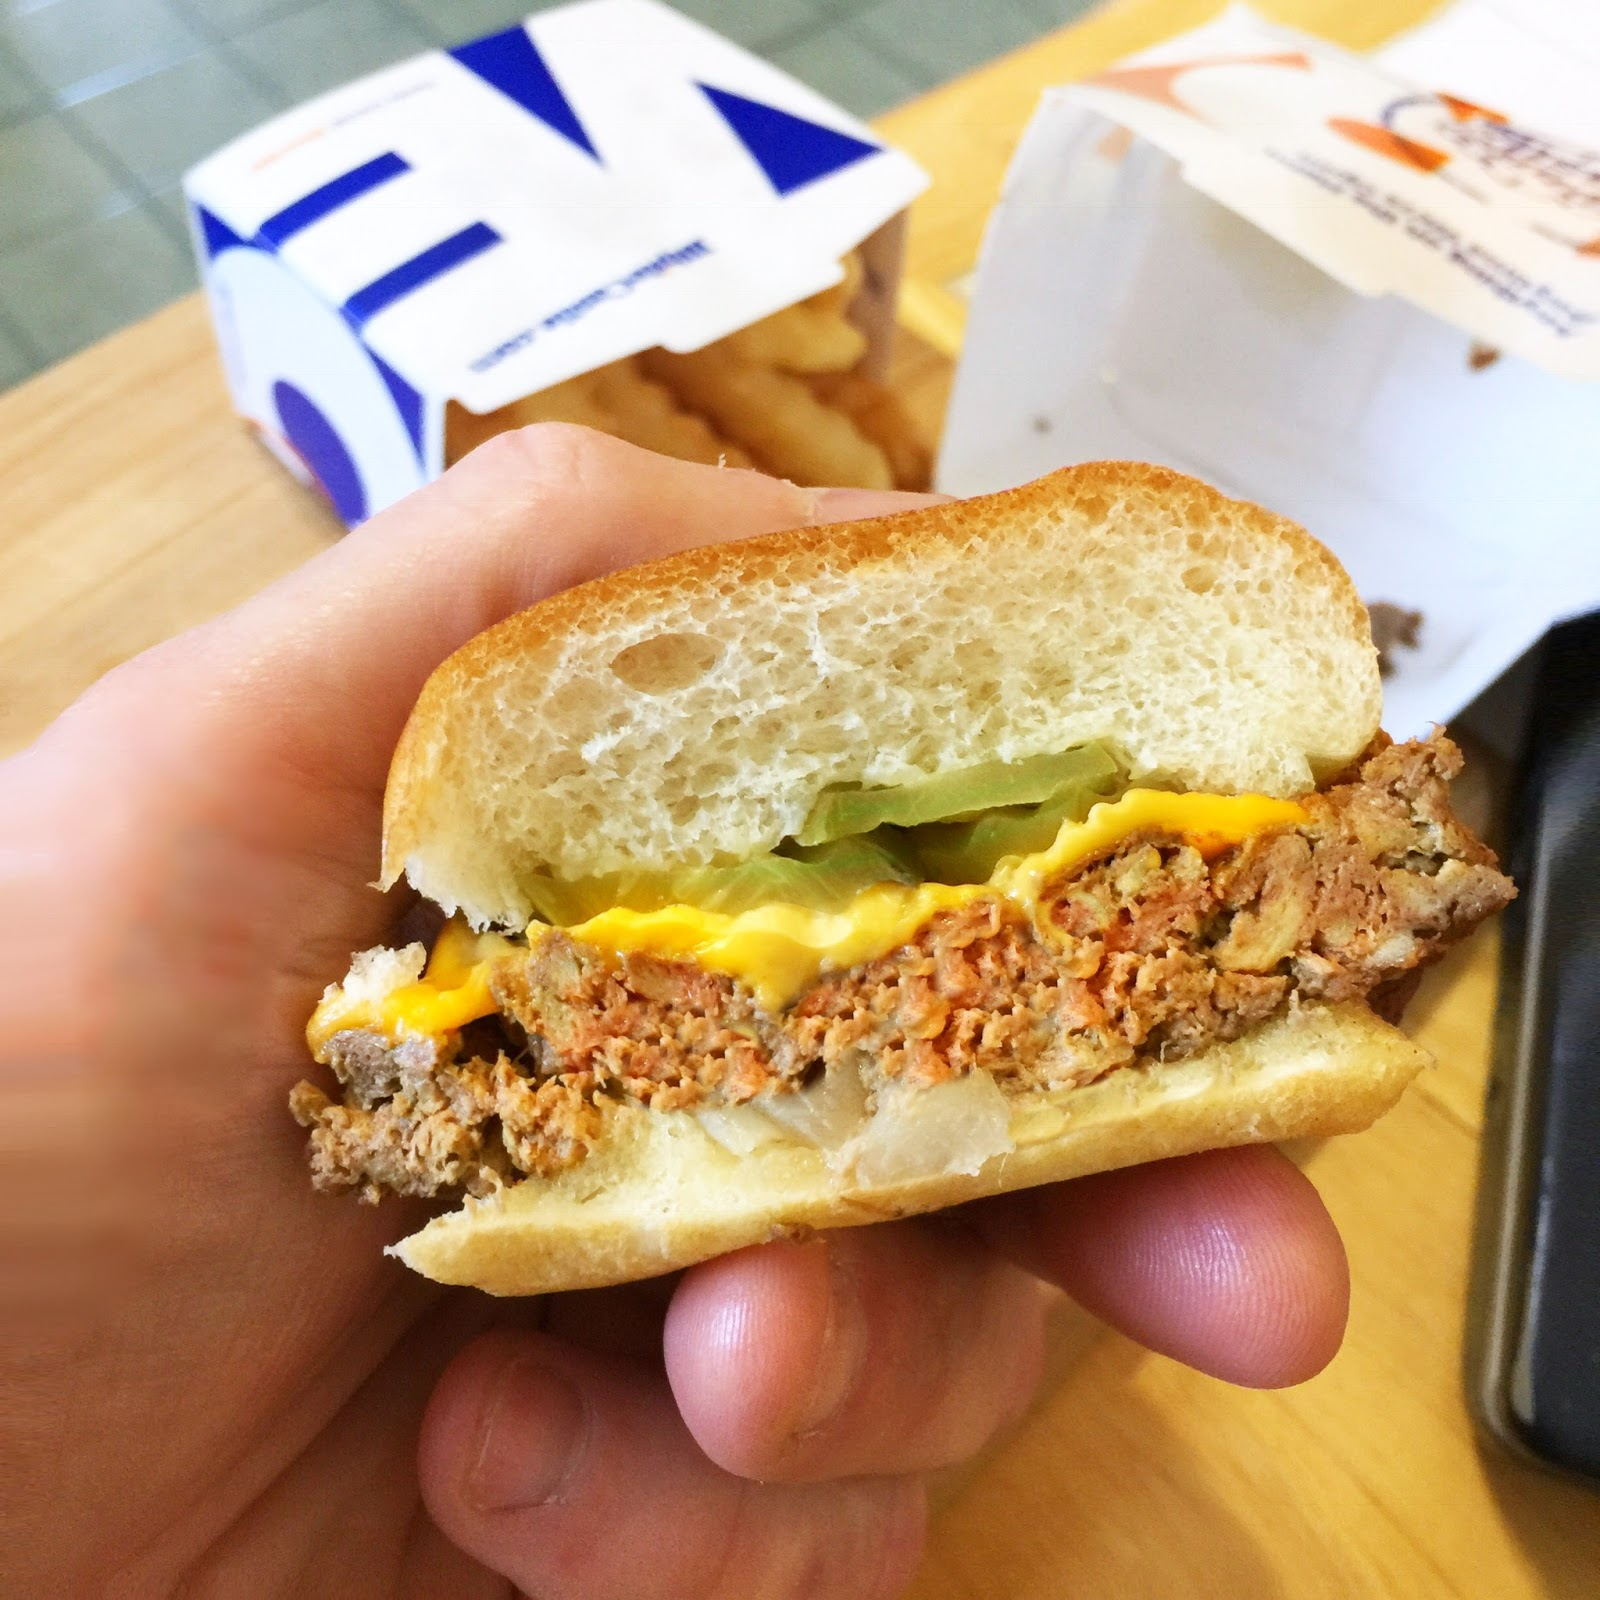 Impossible Foods plant based meat Impossible Slider from White Castle